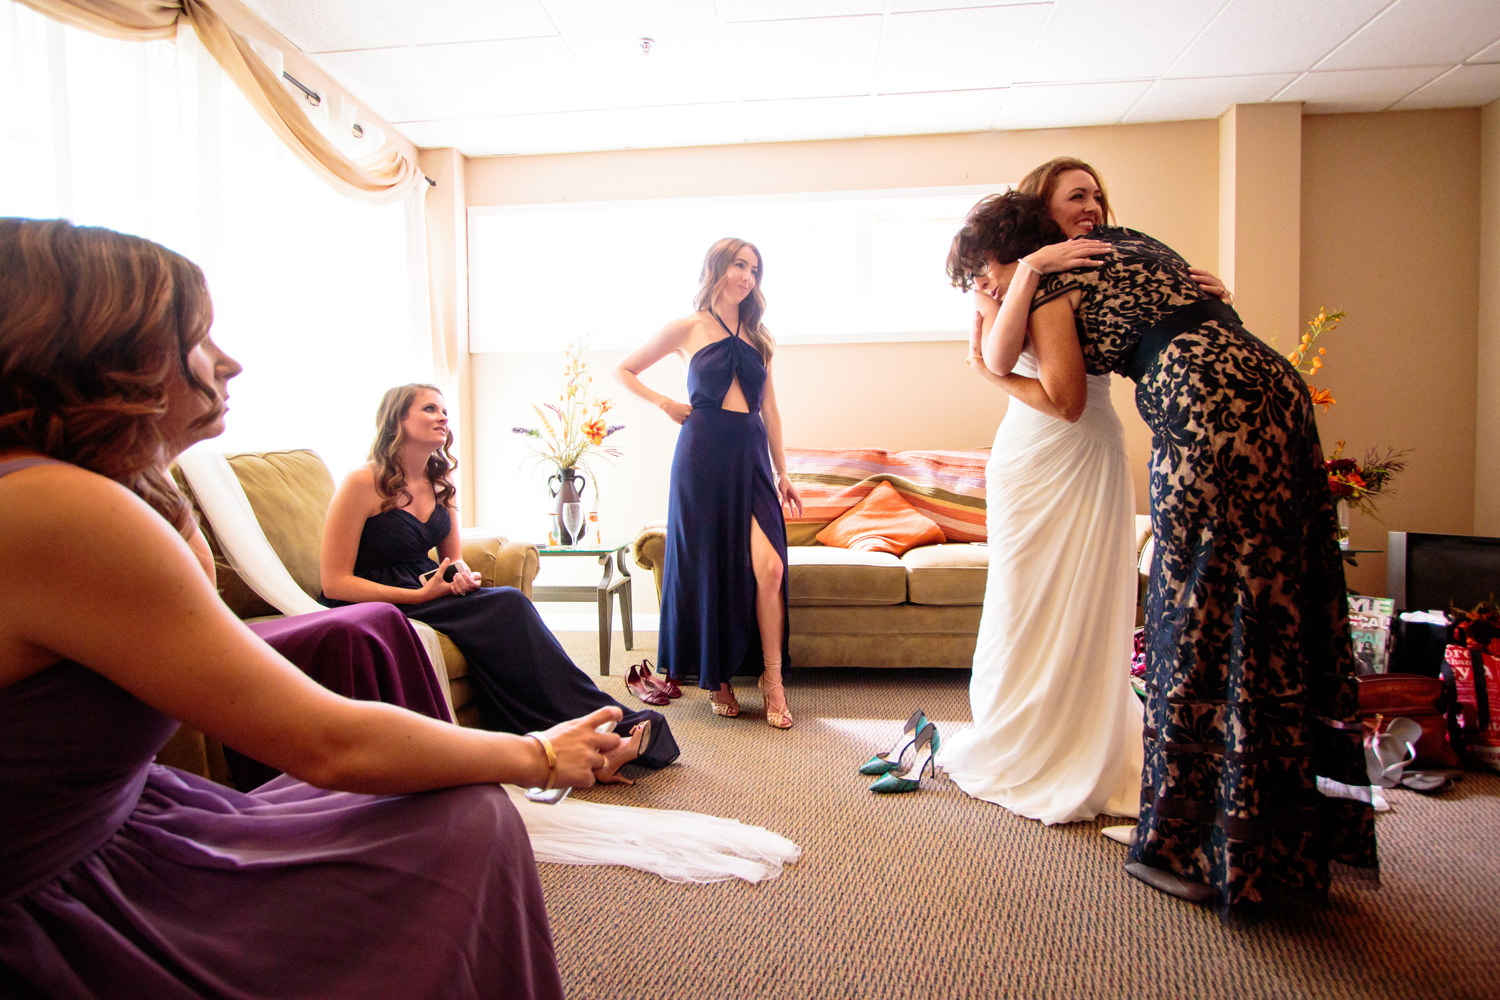 fort-collins-country-club-wedding-photographer-tomKphoto006.jpg